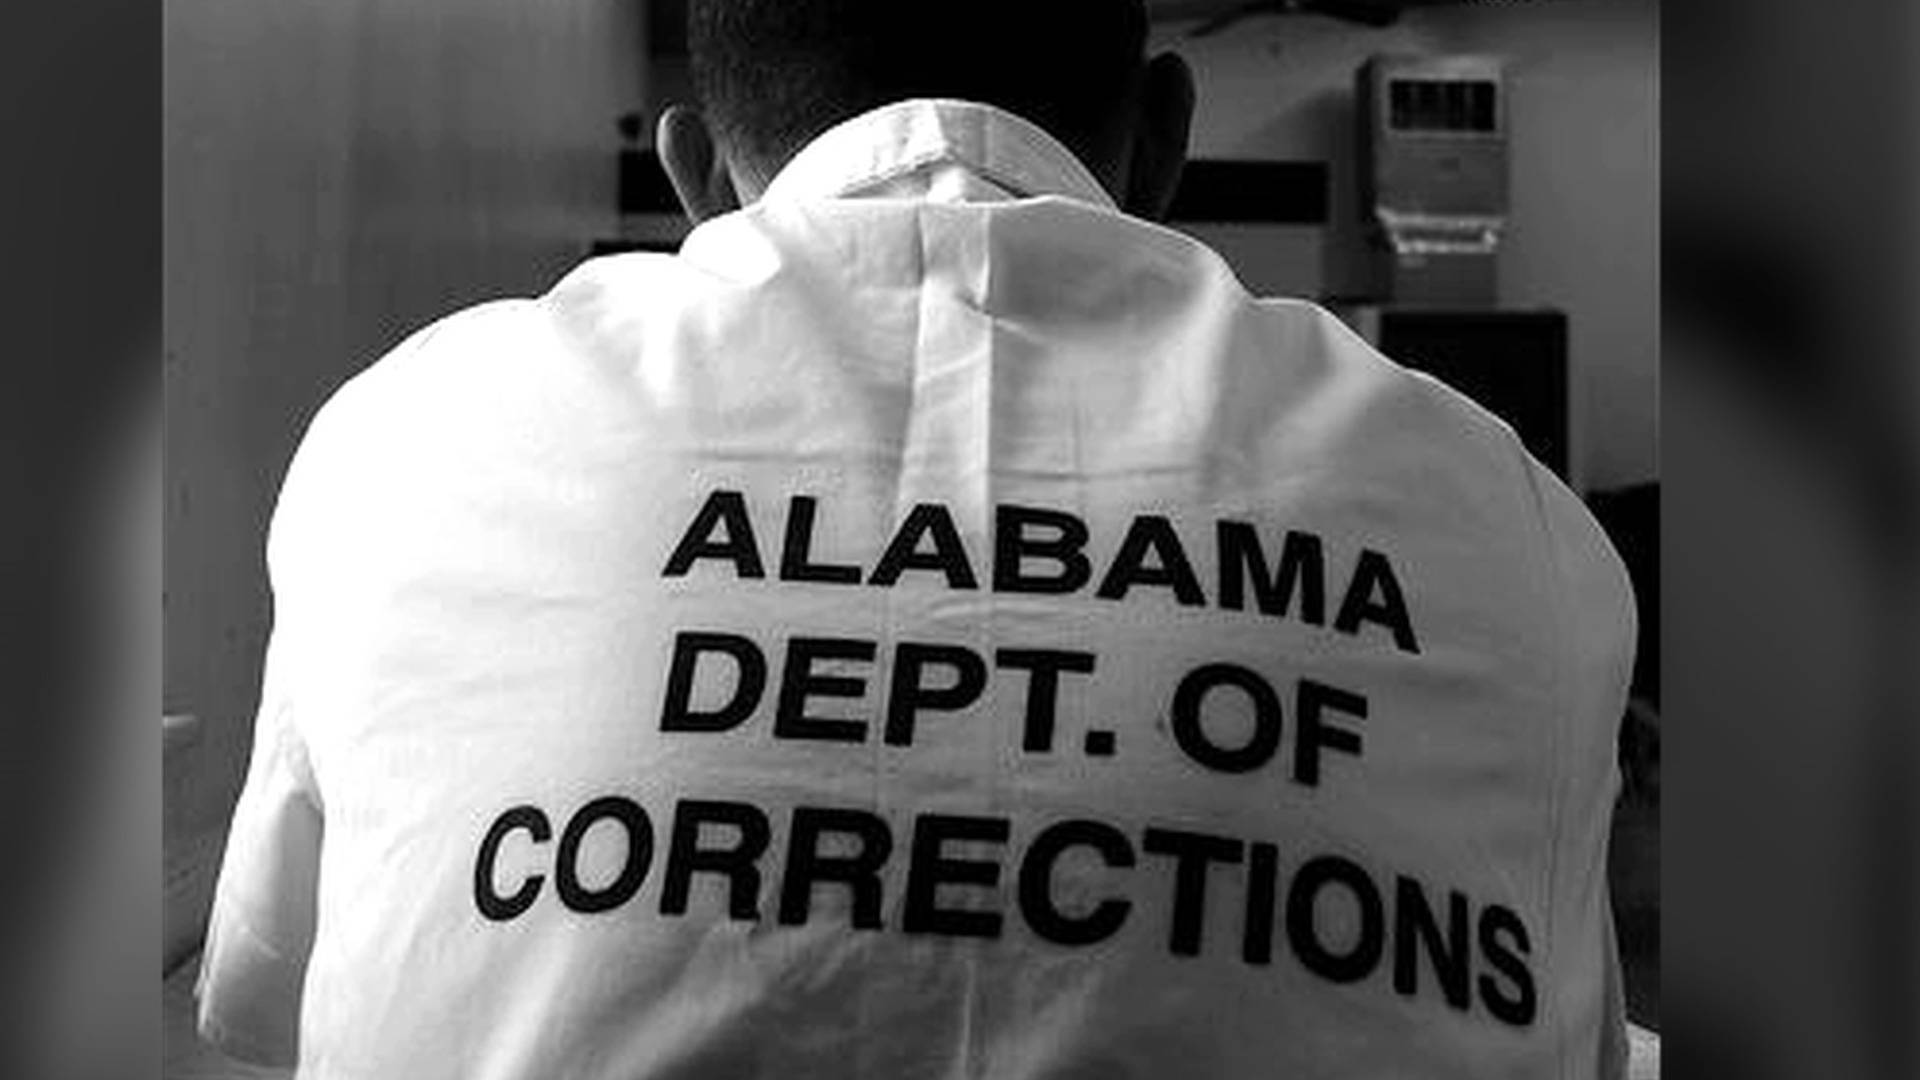 Free Alabama Movement, prison labor strikes, prison labor revolts, Northwest Prisoner Support, prison industrial complex, prison brutality, Virginia Correctional Enterprises, prison beatings, prison abuse, prison privatization, prisoner solidarity